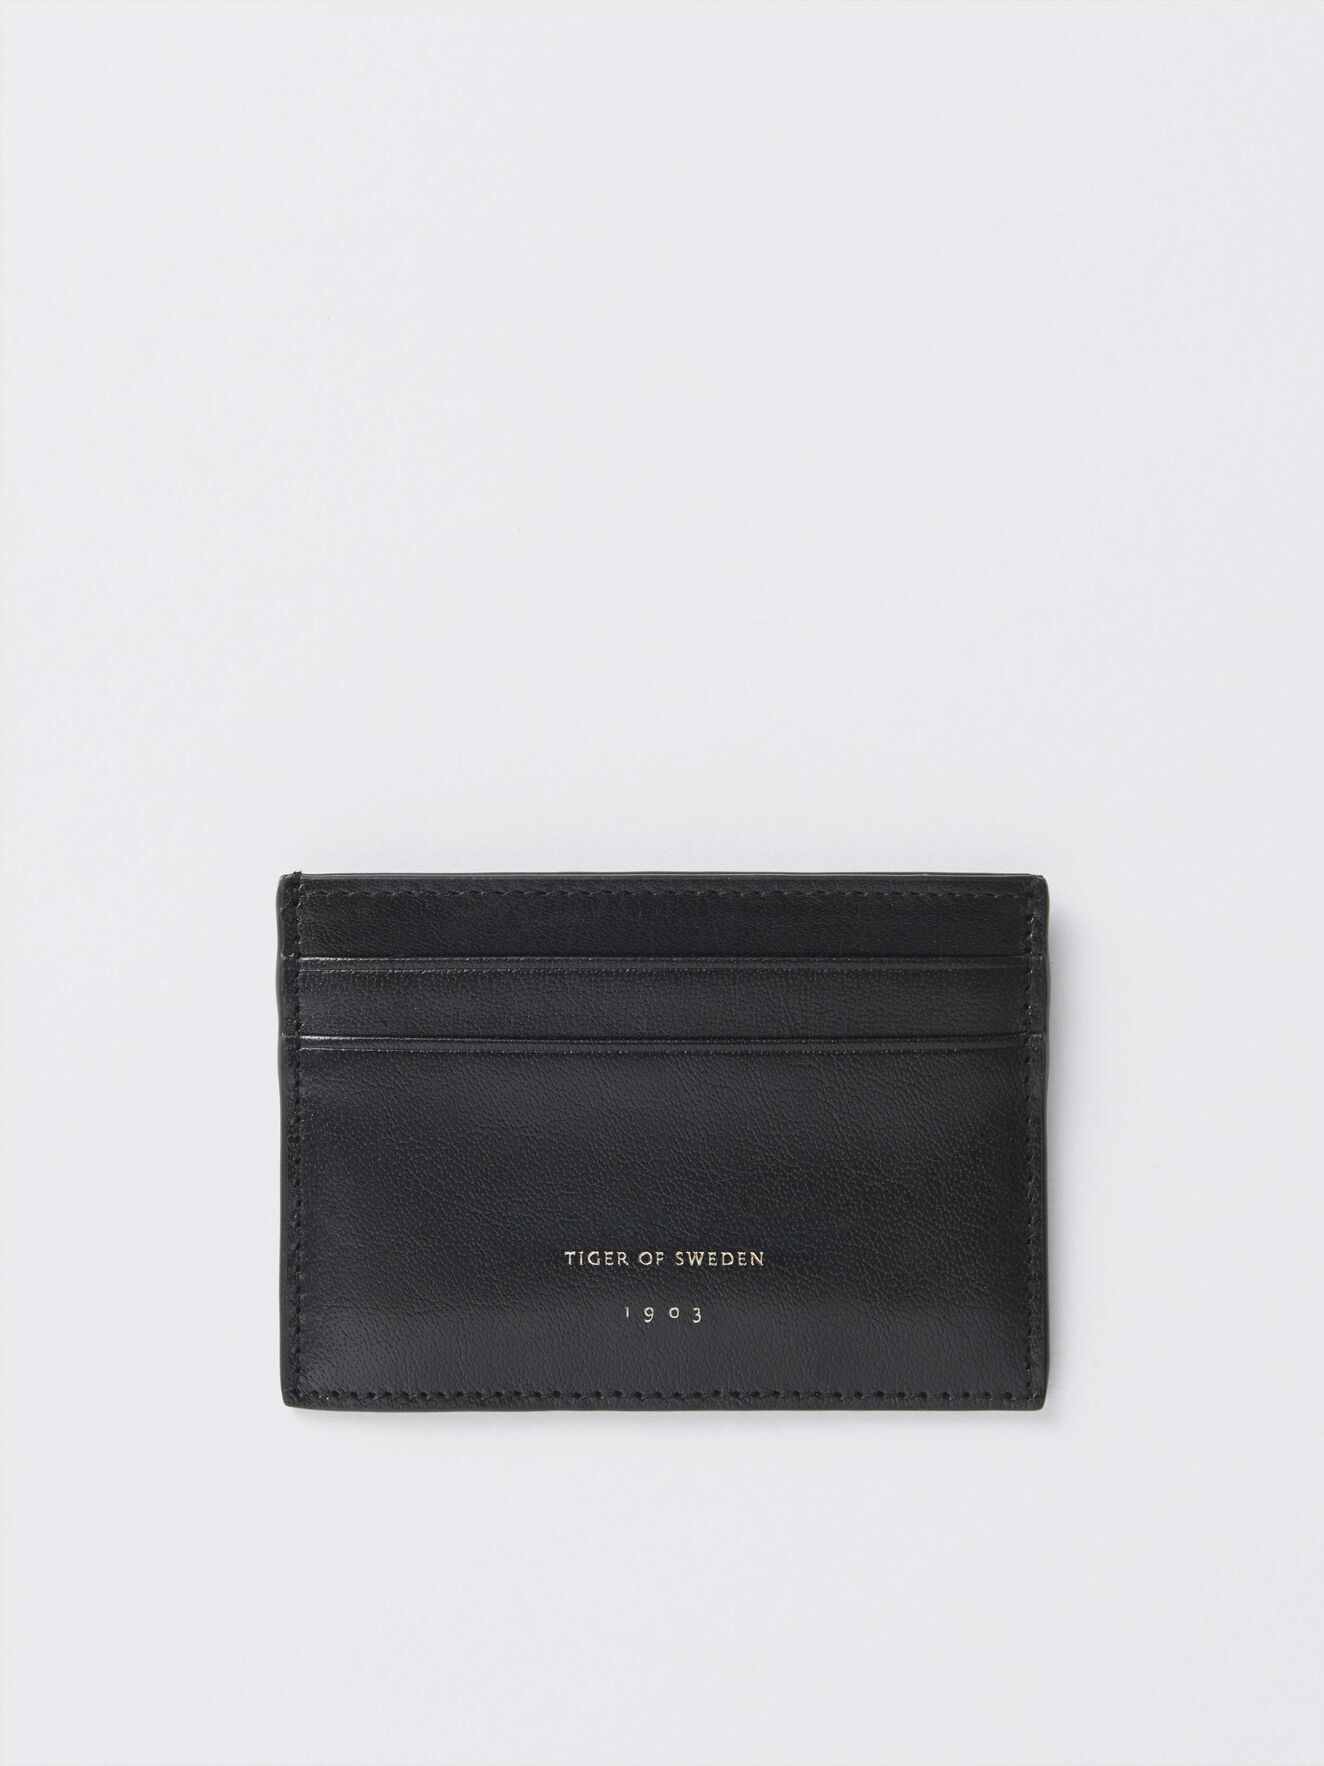 89240712906 Wallets - Buy leather designer wallets online at Tiger of Sweden